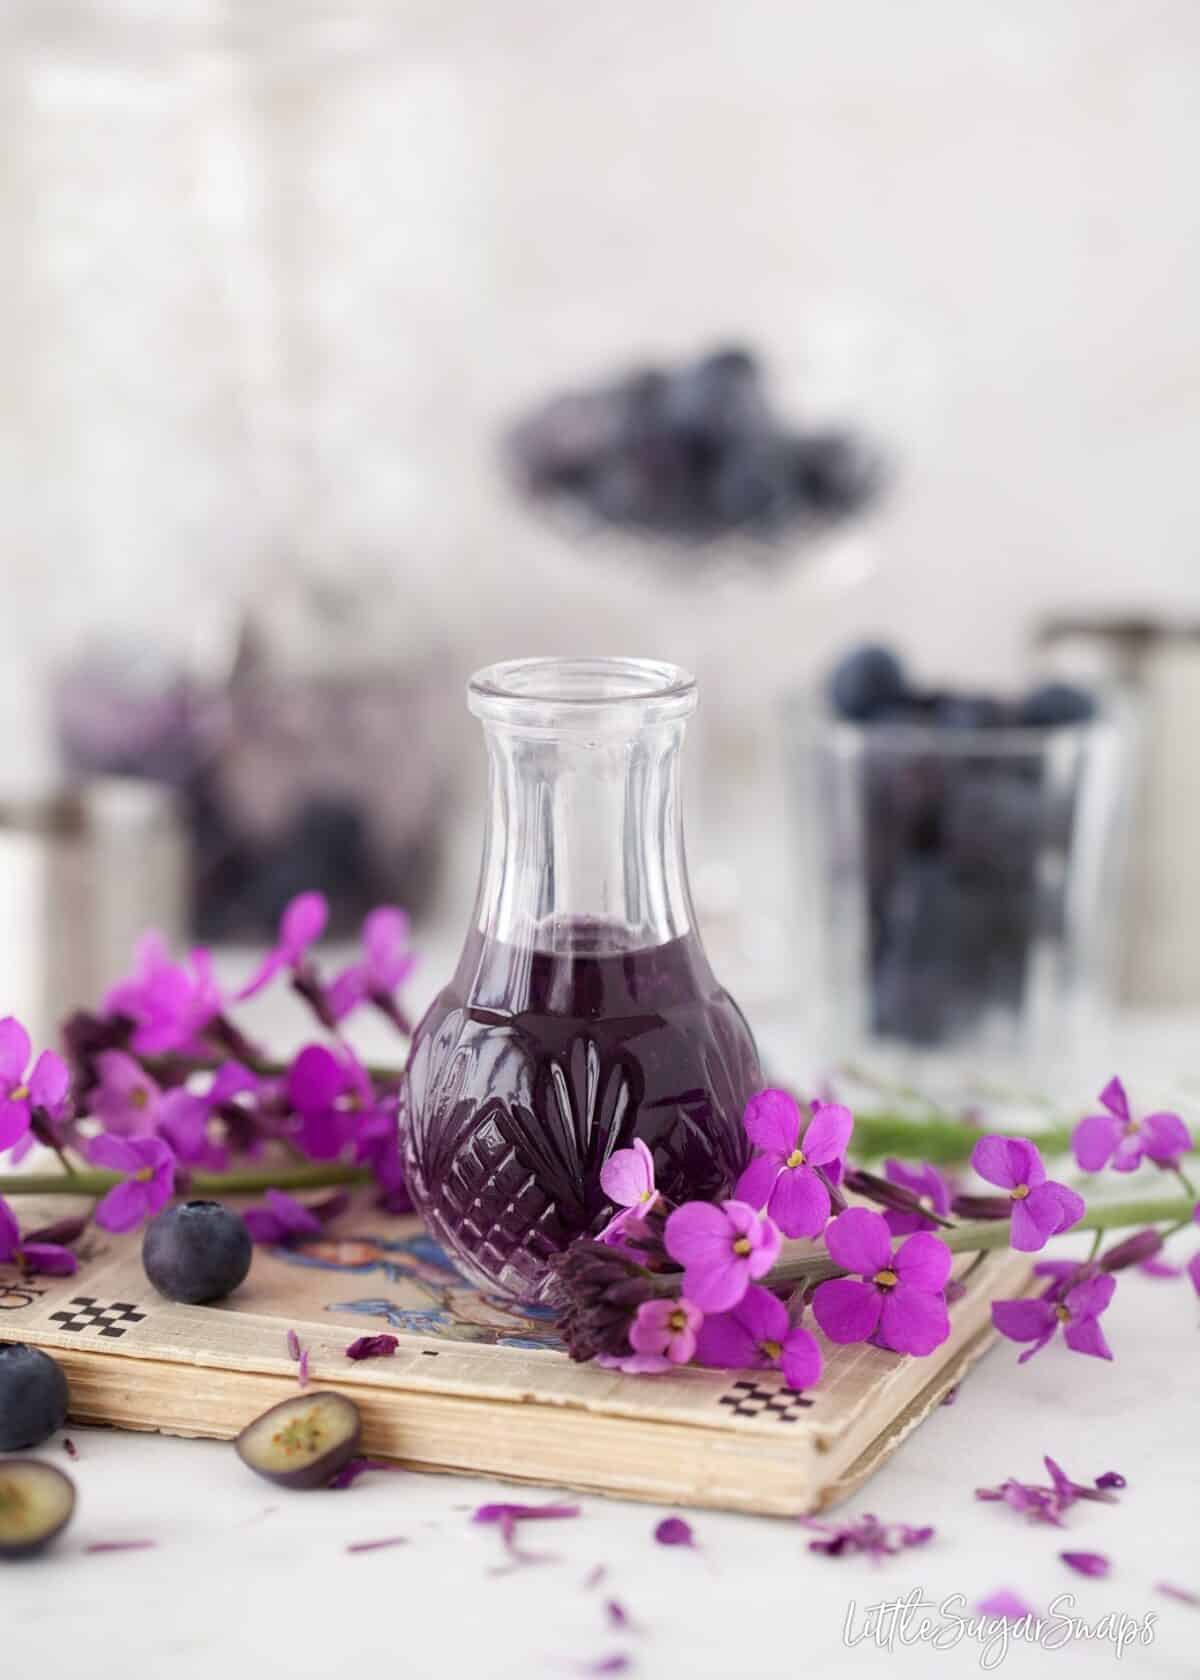 Violet liqueur with blueberries and purple flowers